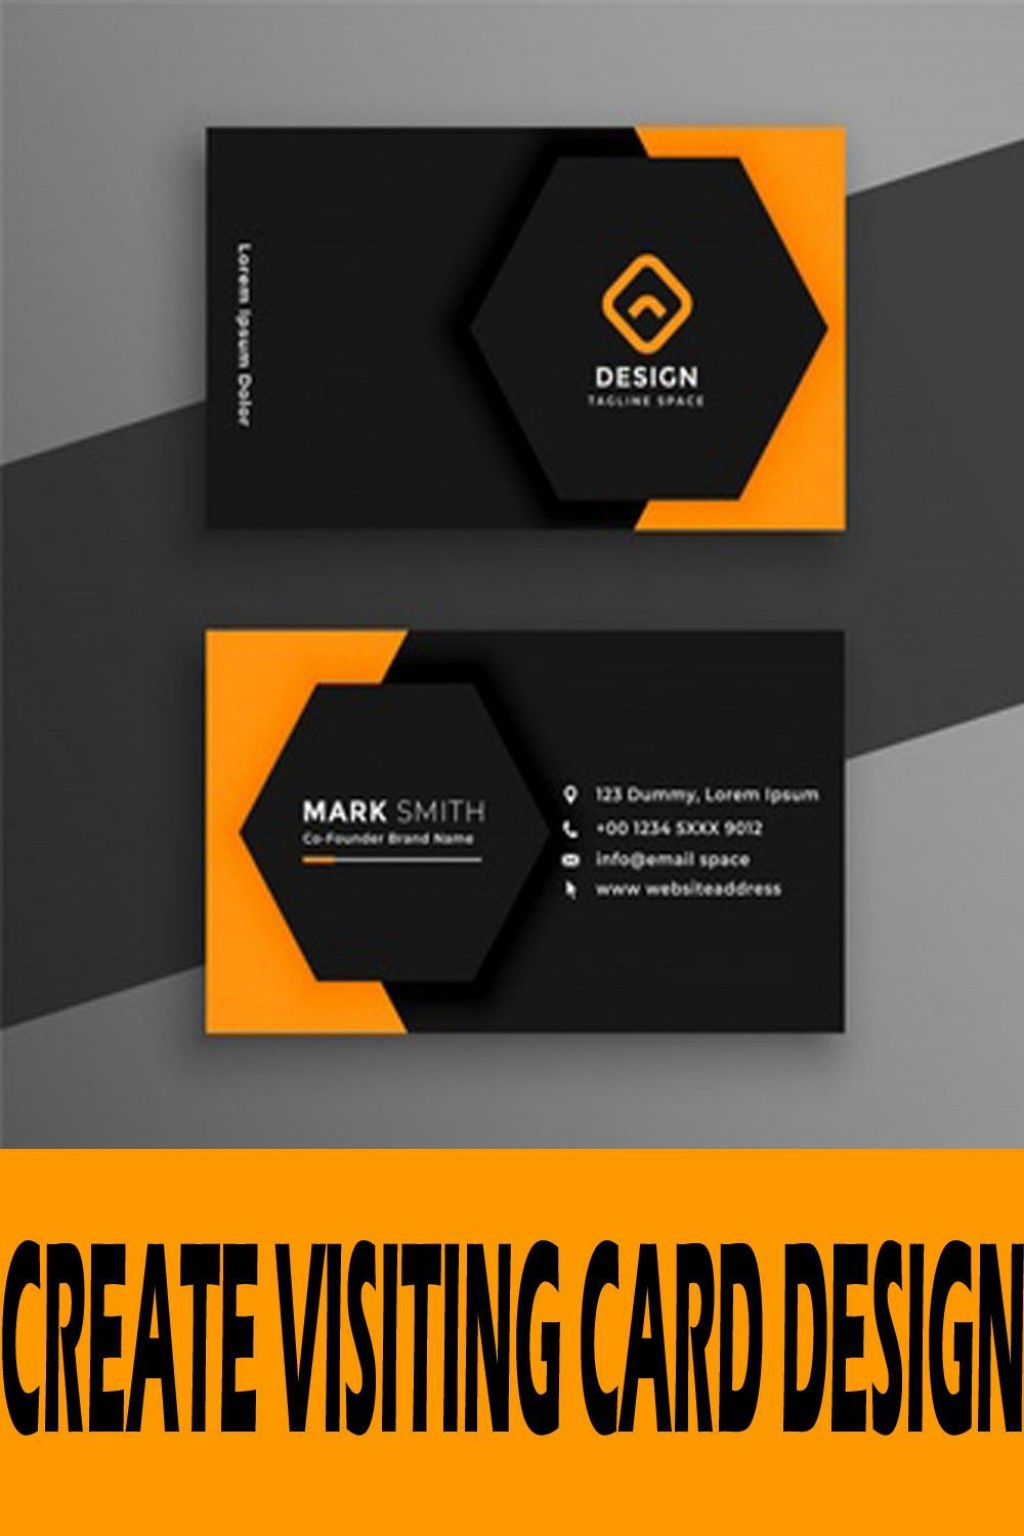 000 Staggering Blank Busines Card Template Psd Free Design  Photoshop DownloadLarge